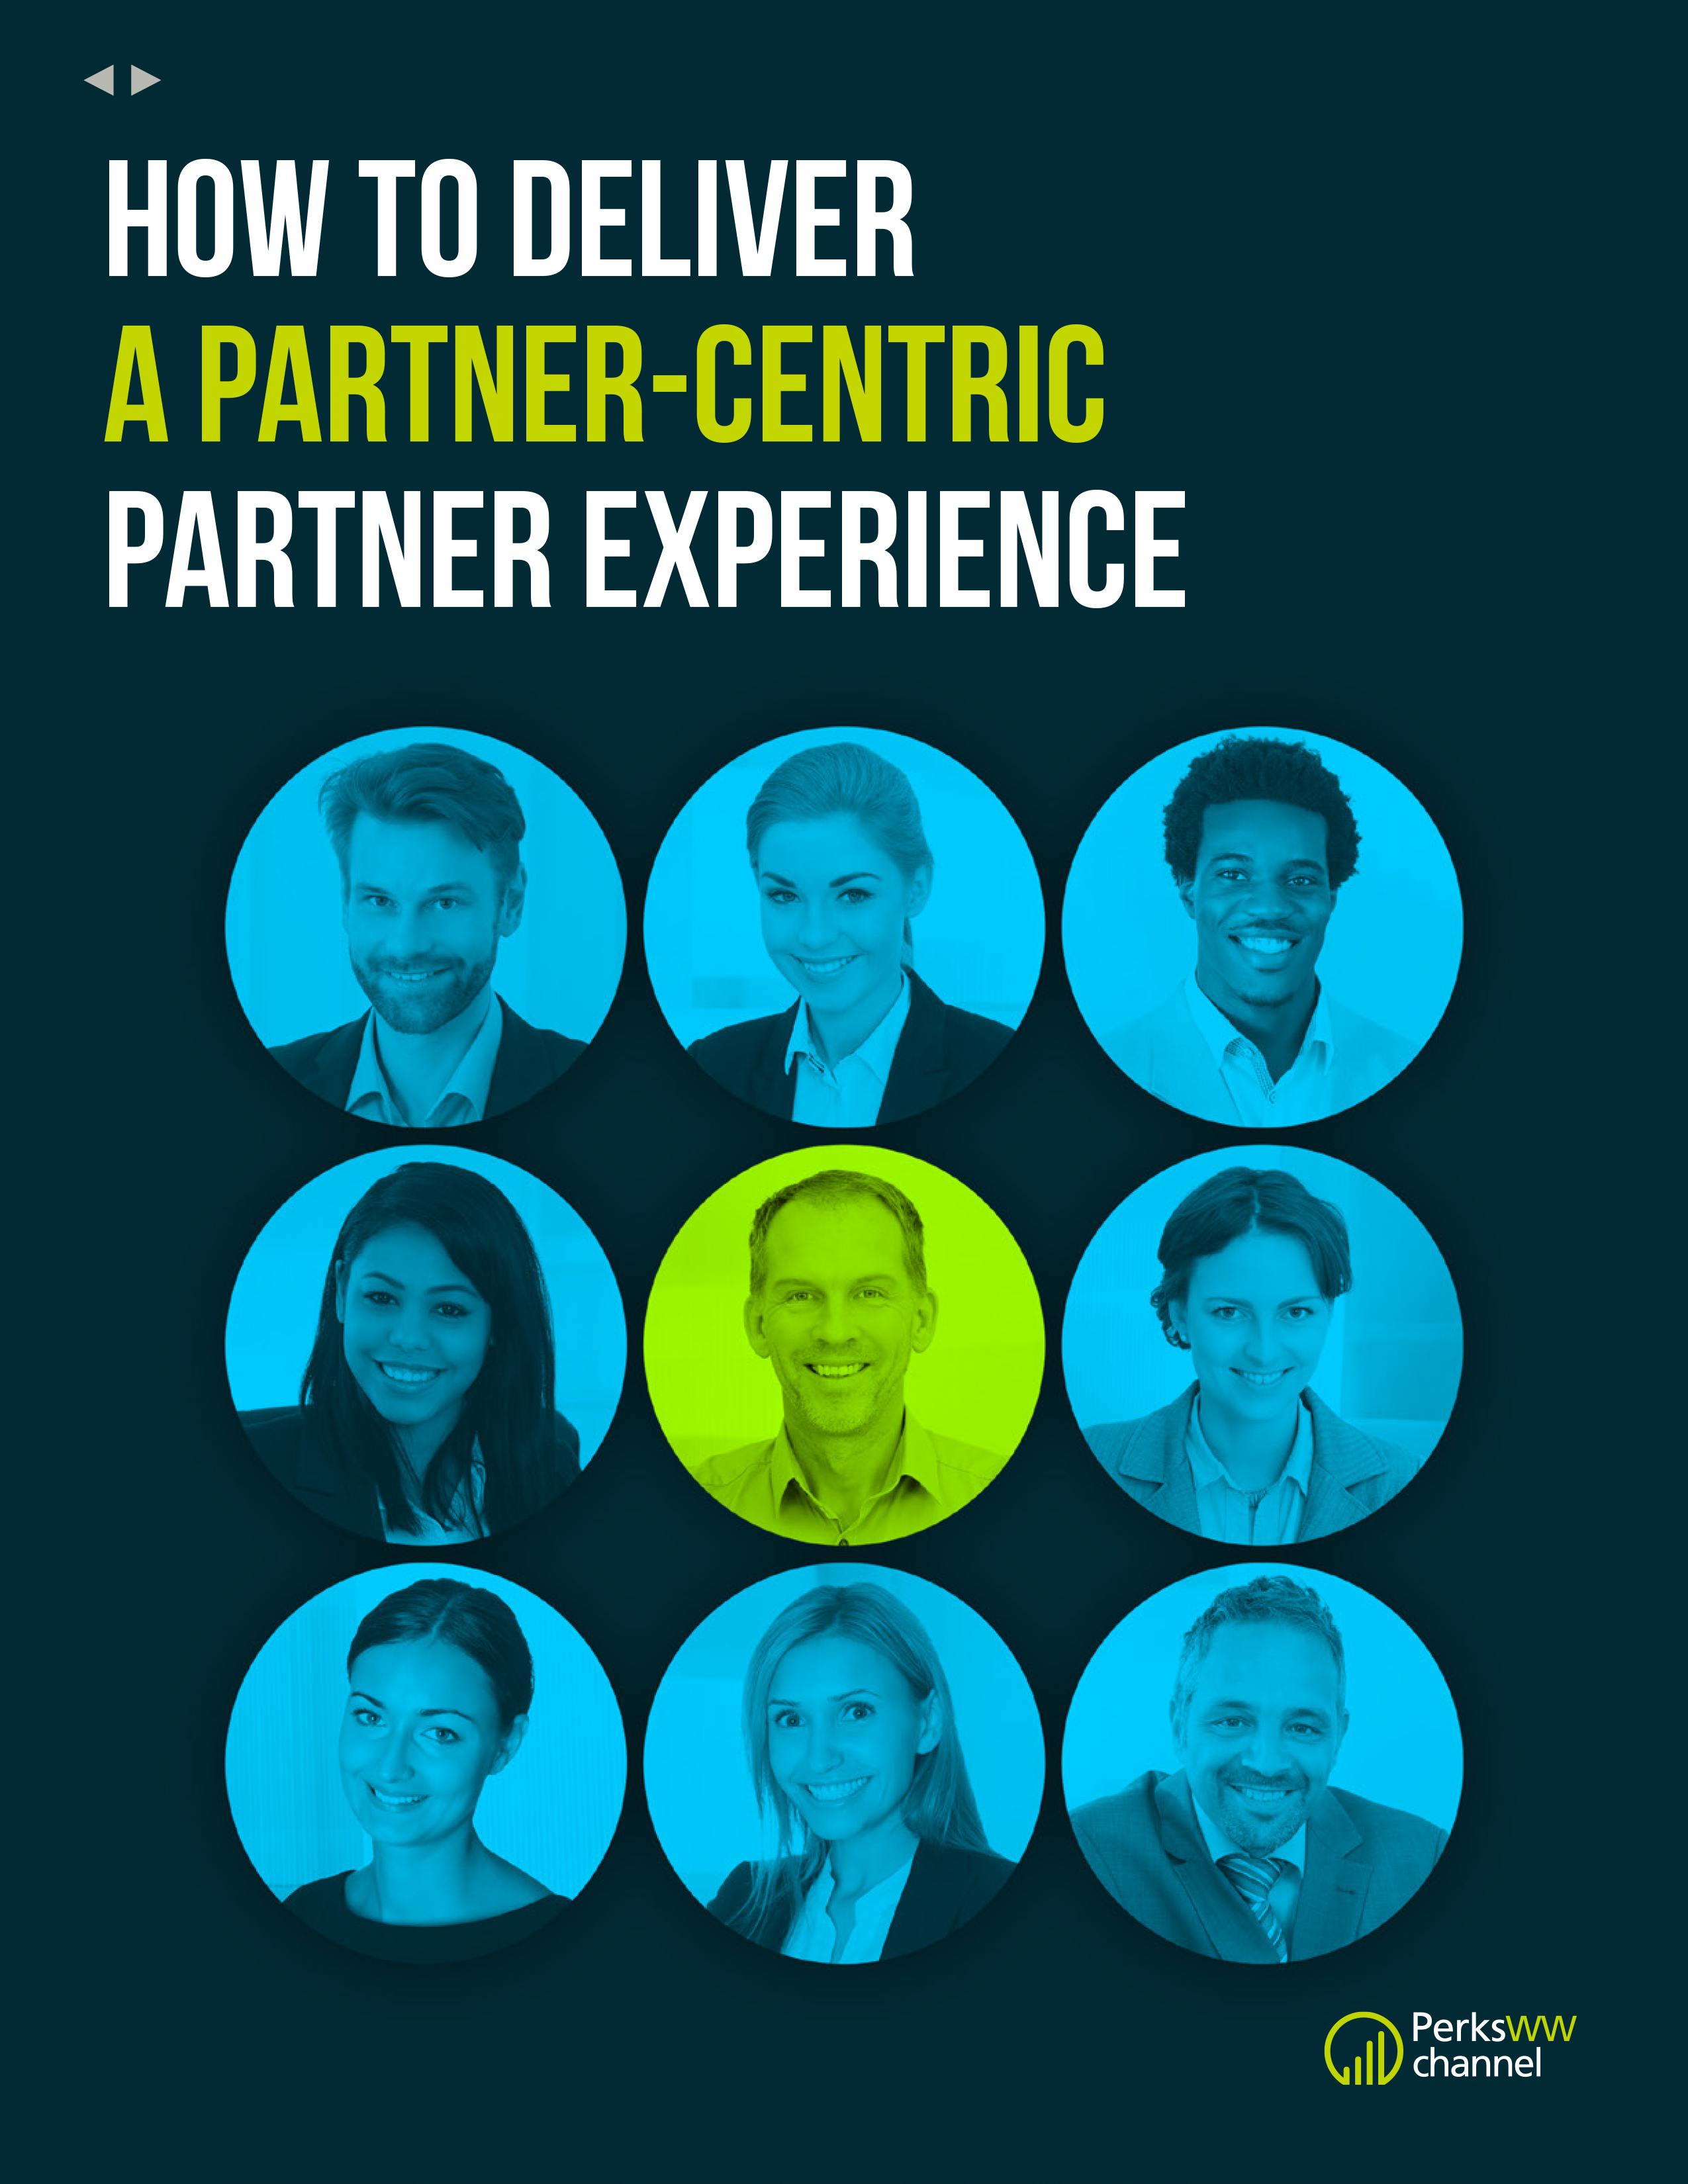 How To Deliver A Partner-Centric Partner Experience